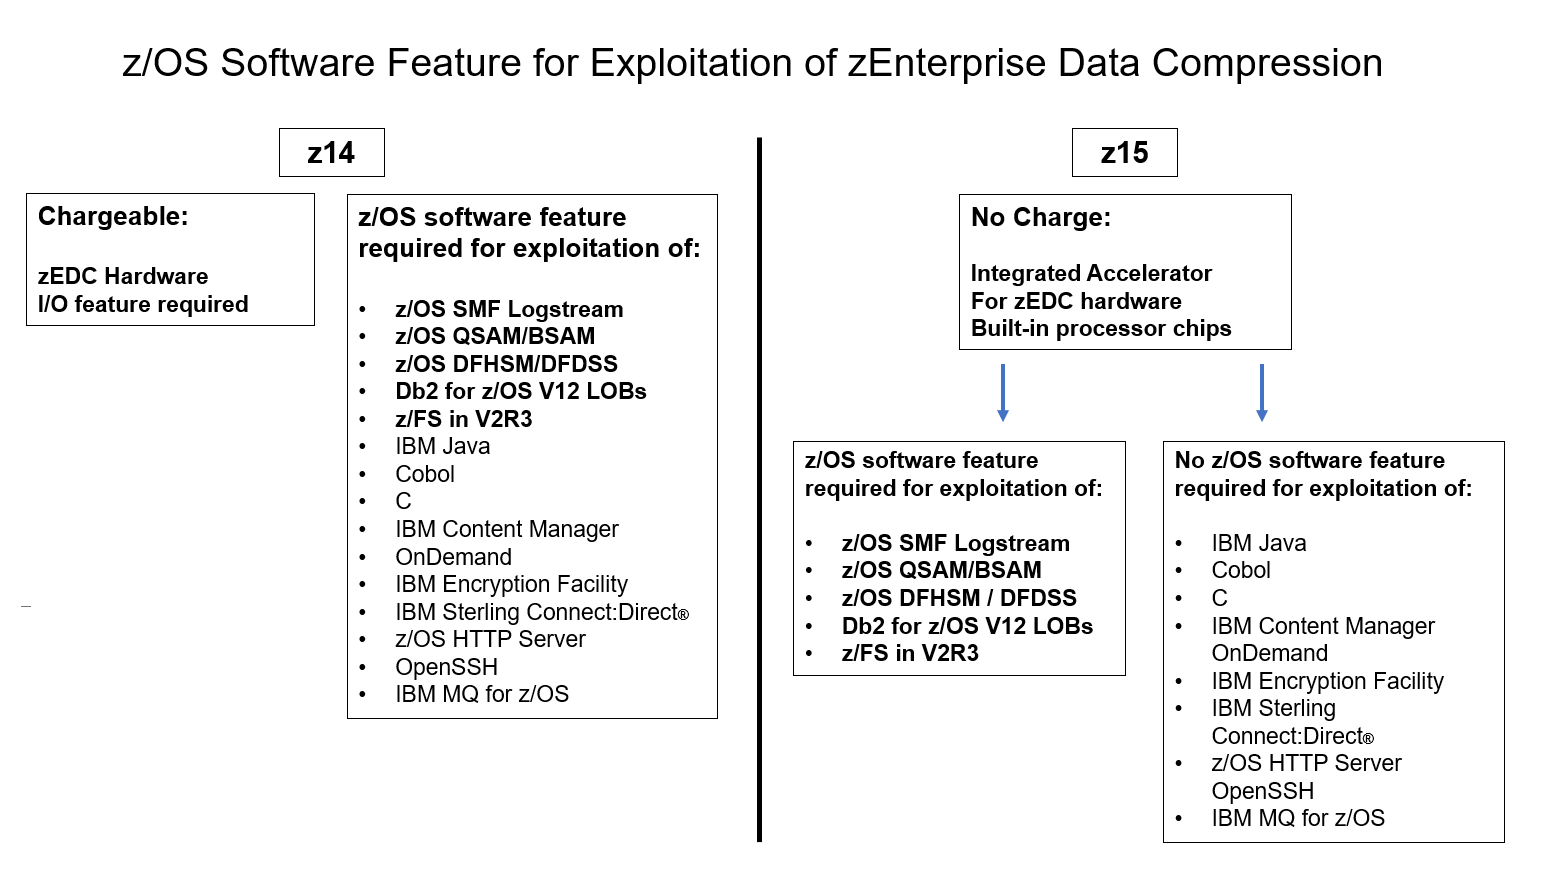 zOS Software Feature for Exploitation of zEnterprise Data Compression